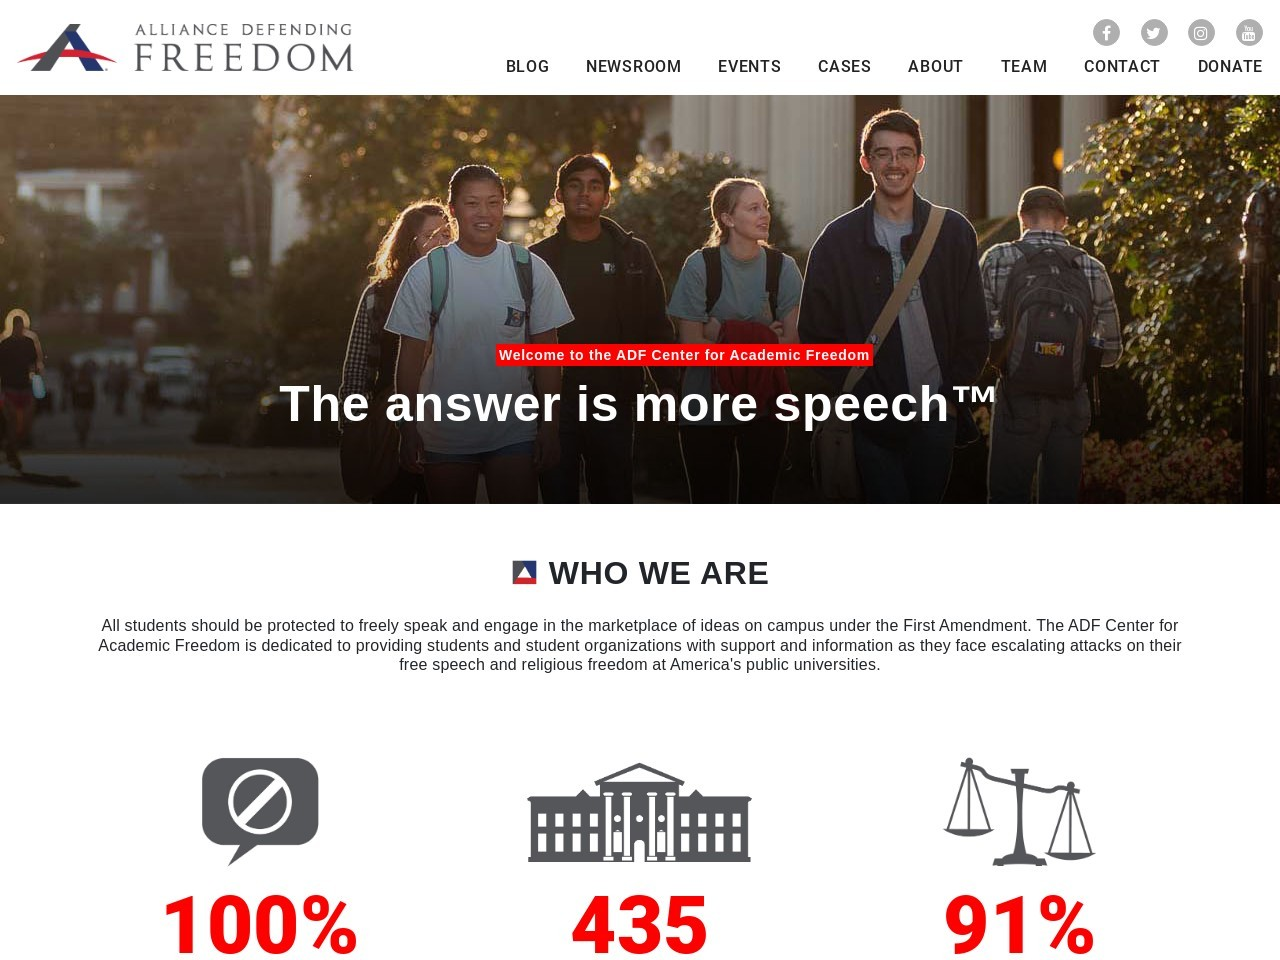 Screenshot of the website ADF Center for Academic Freedom